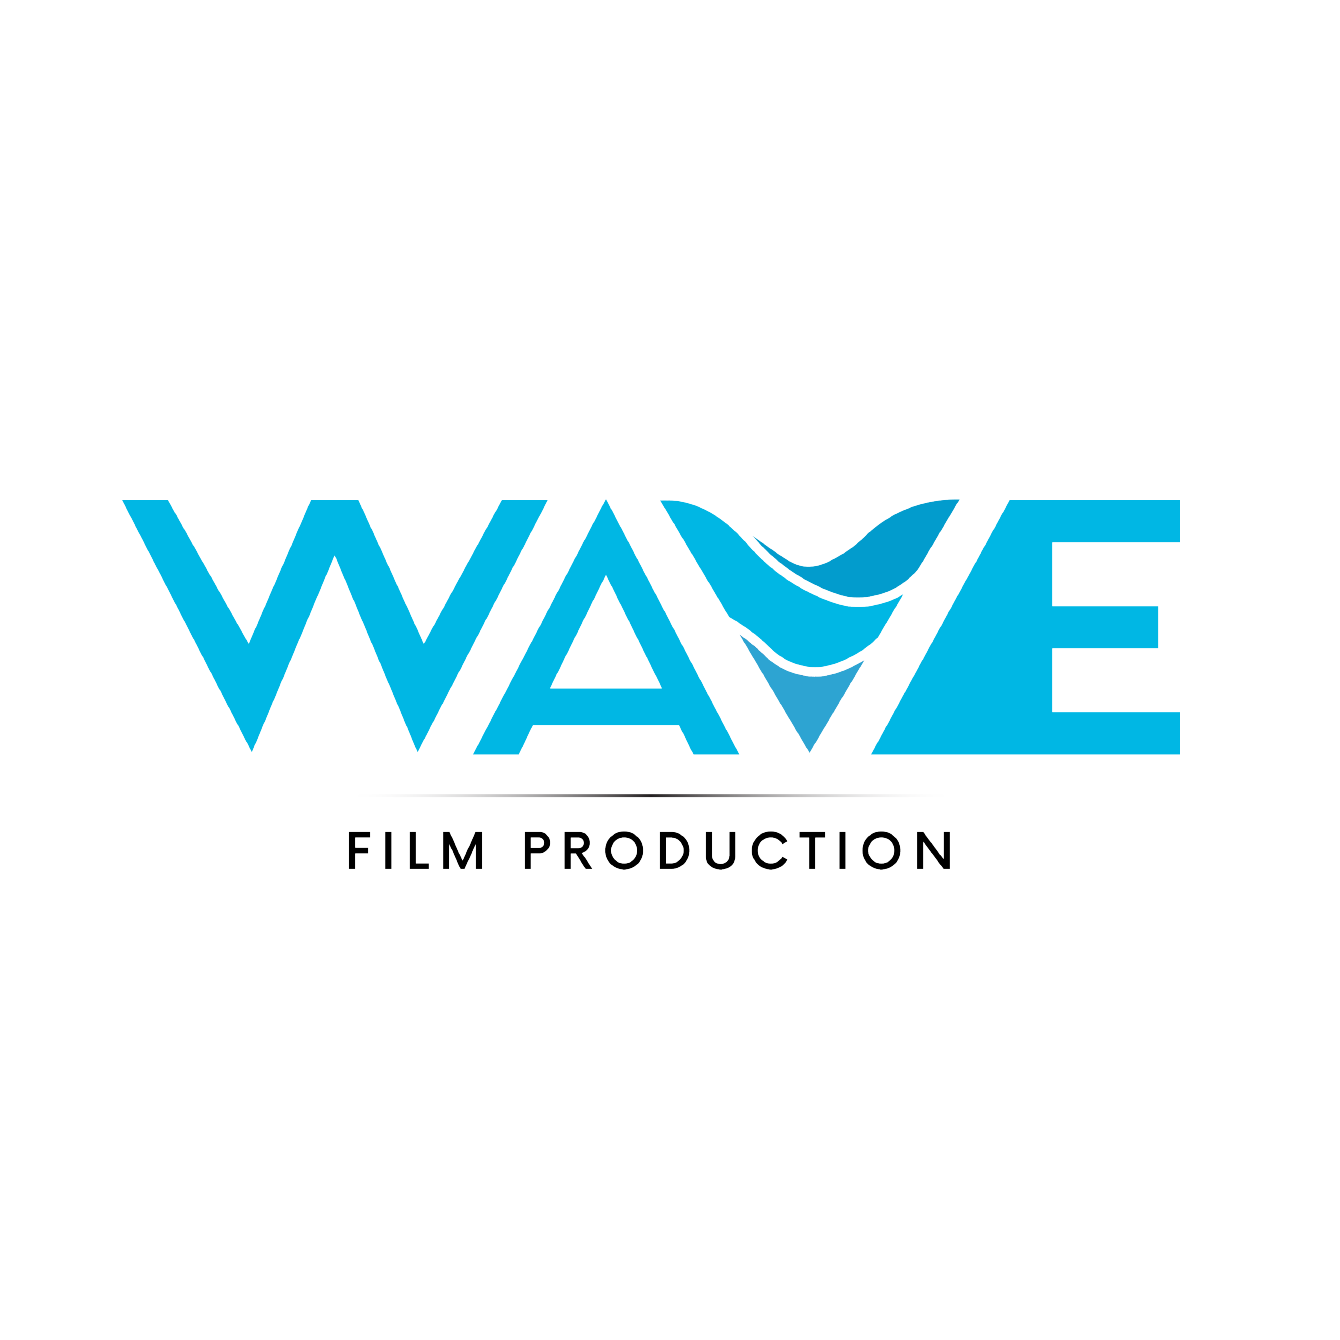 Wave Film Production